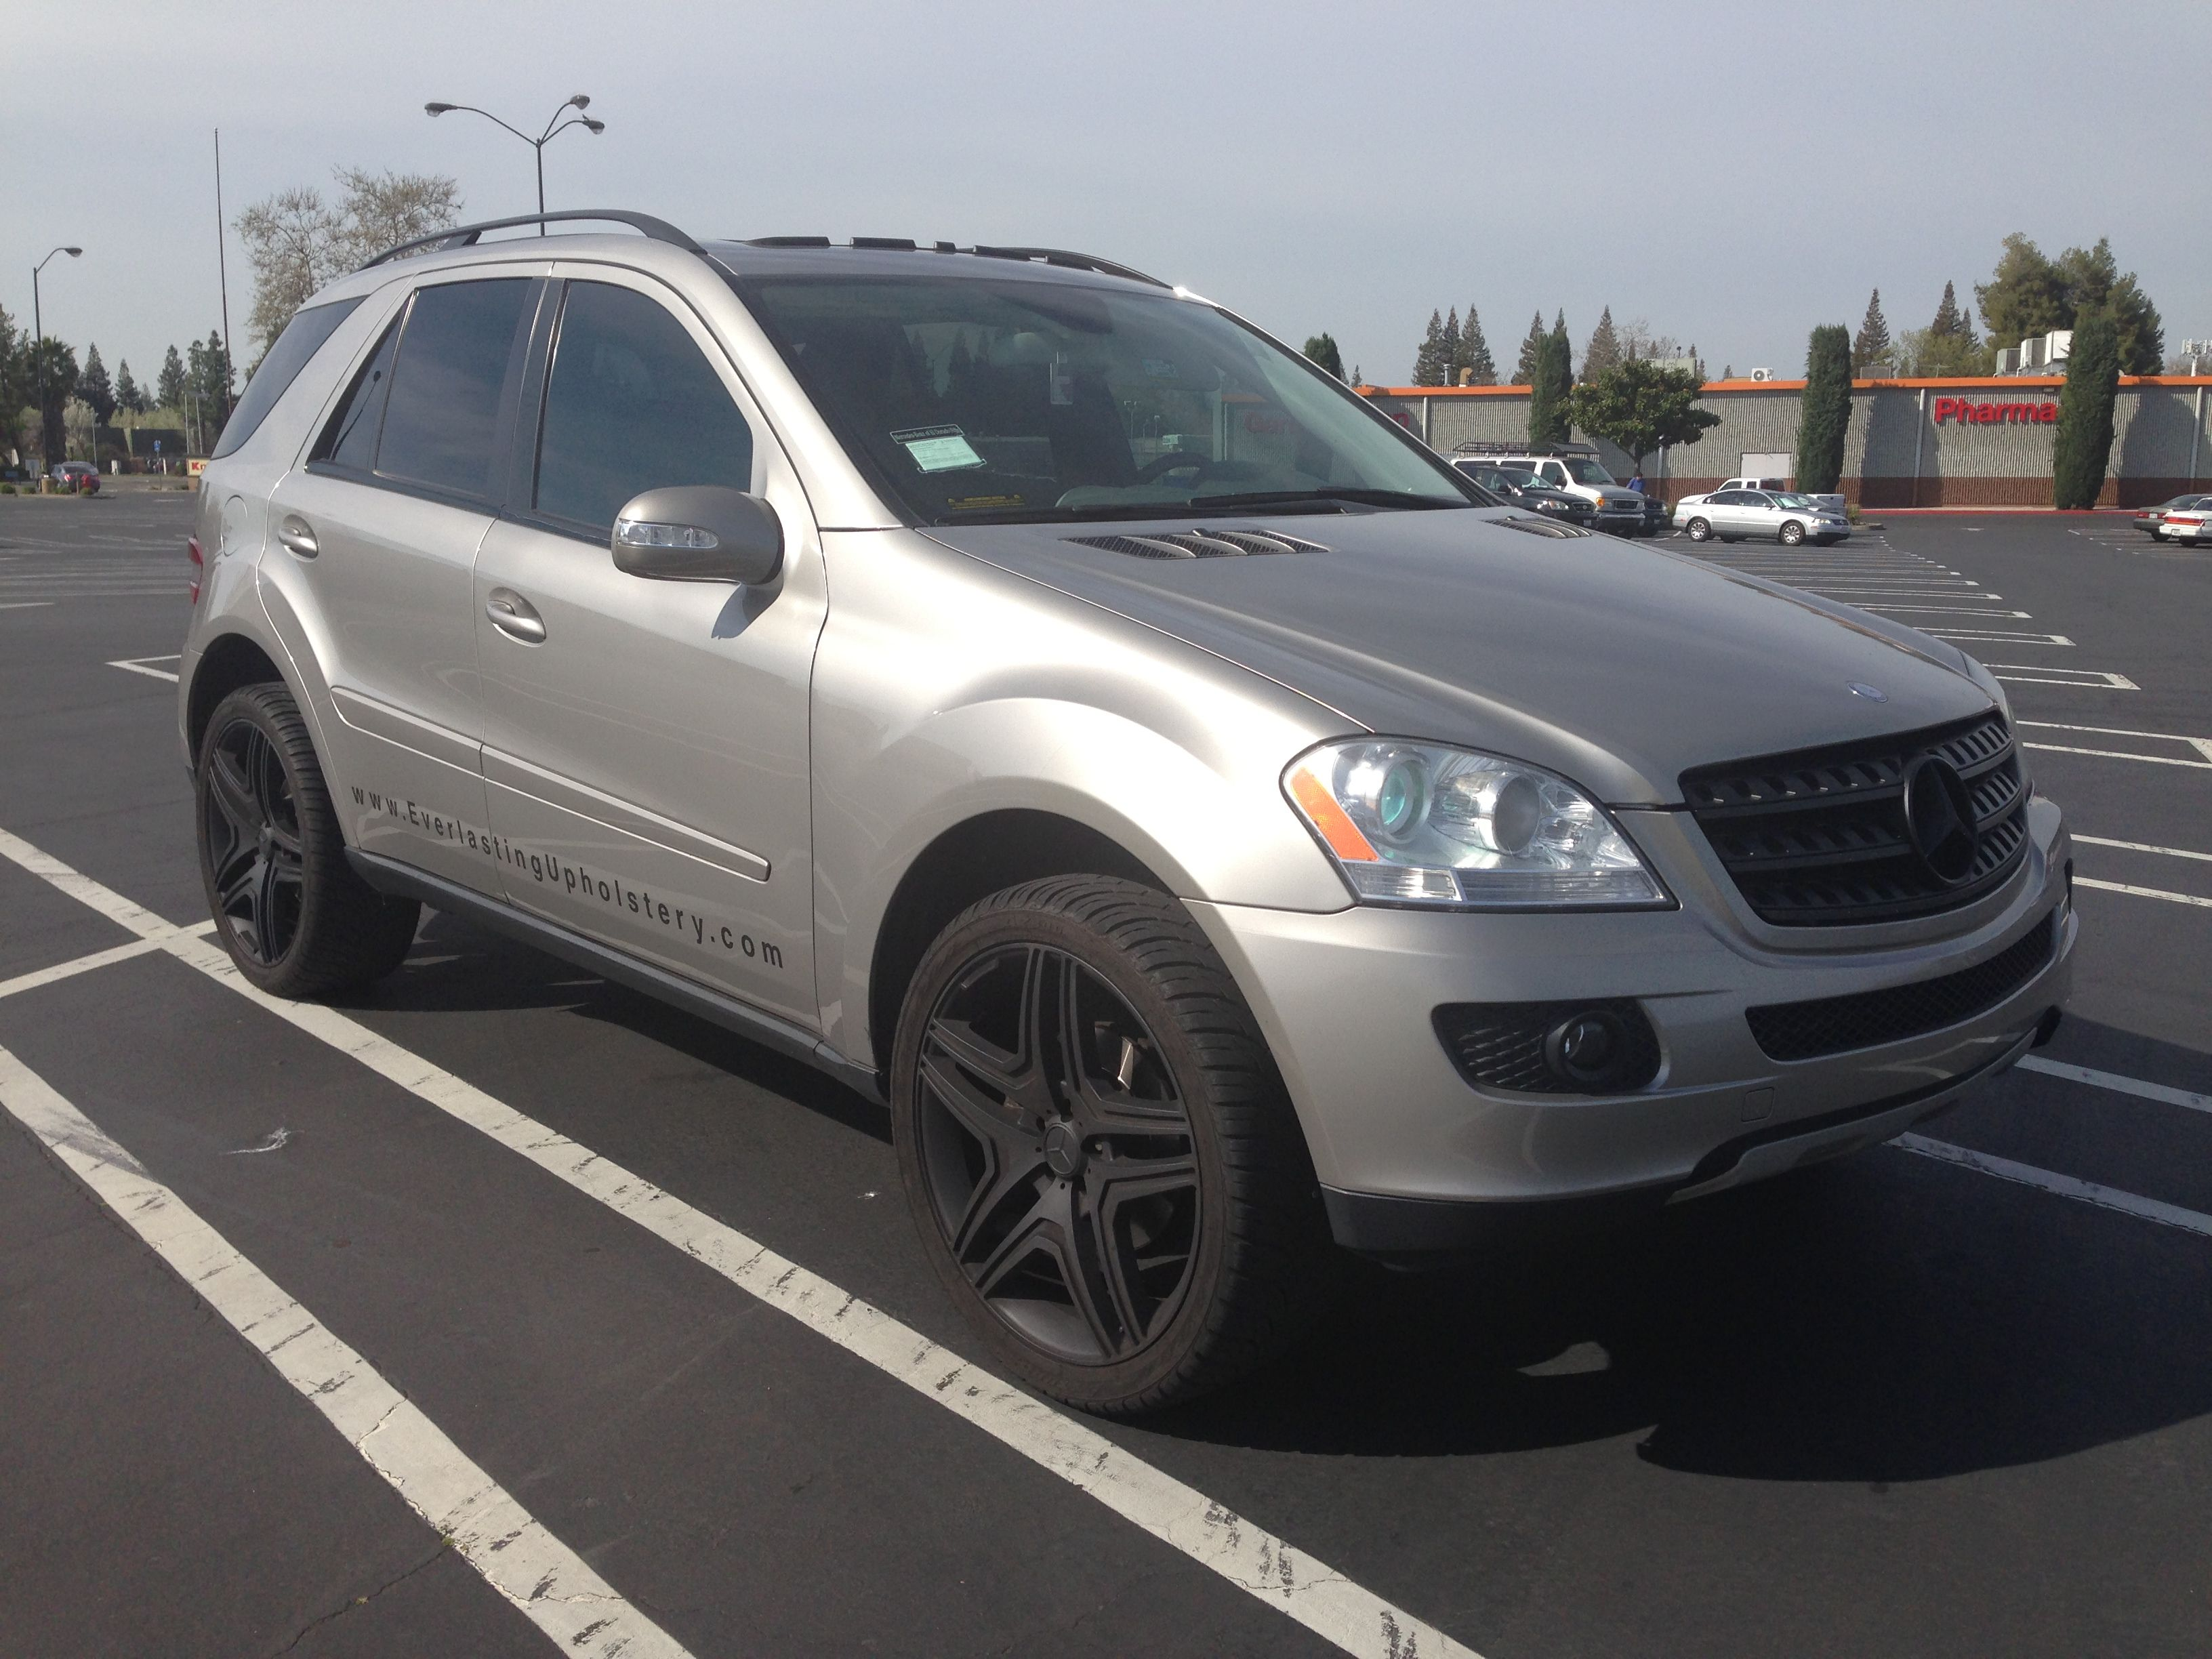 For sale 07 mercedes benz ml350 with 97k miles runs and